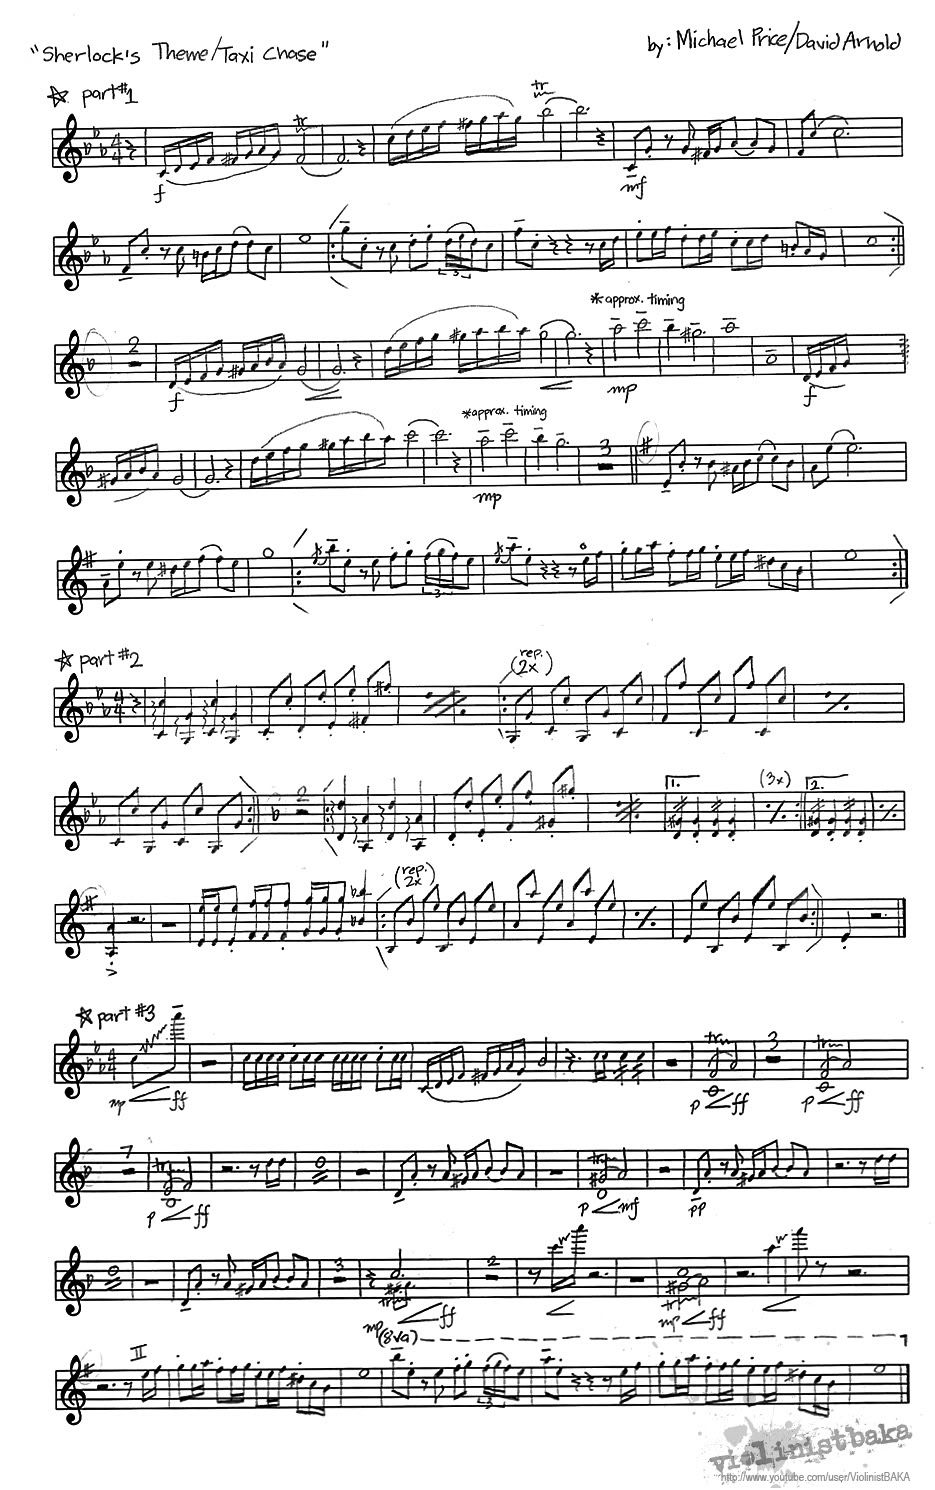 Sherlock Theme/Taxi Chase Sheet Music for violin | Music | Pinterest | A tv, Violin and Pictures